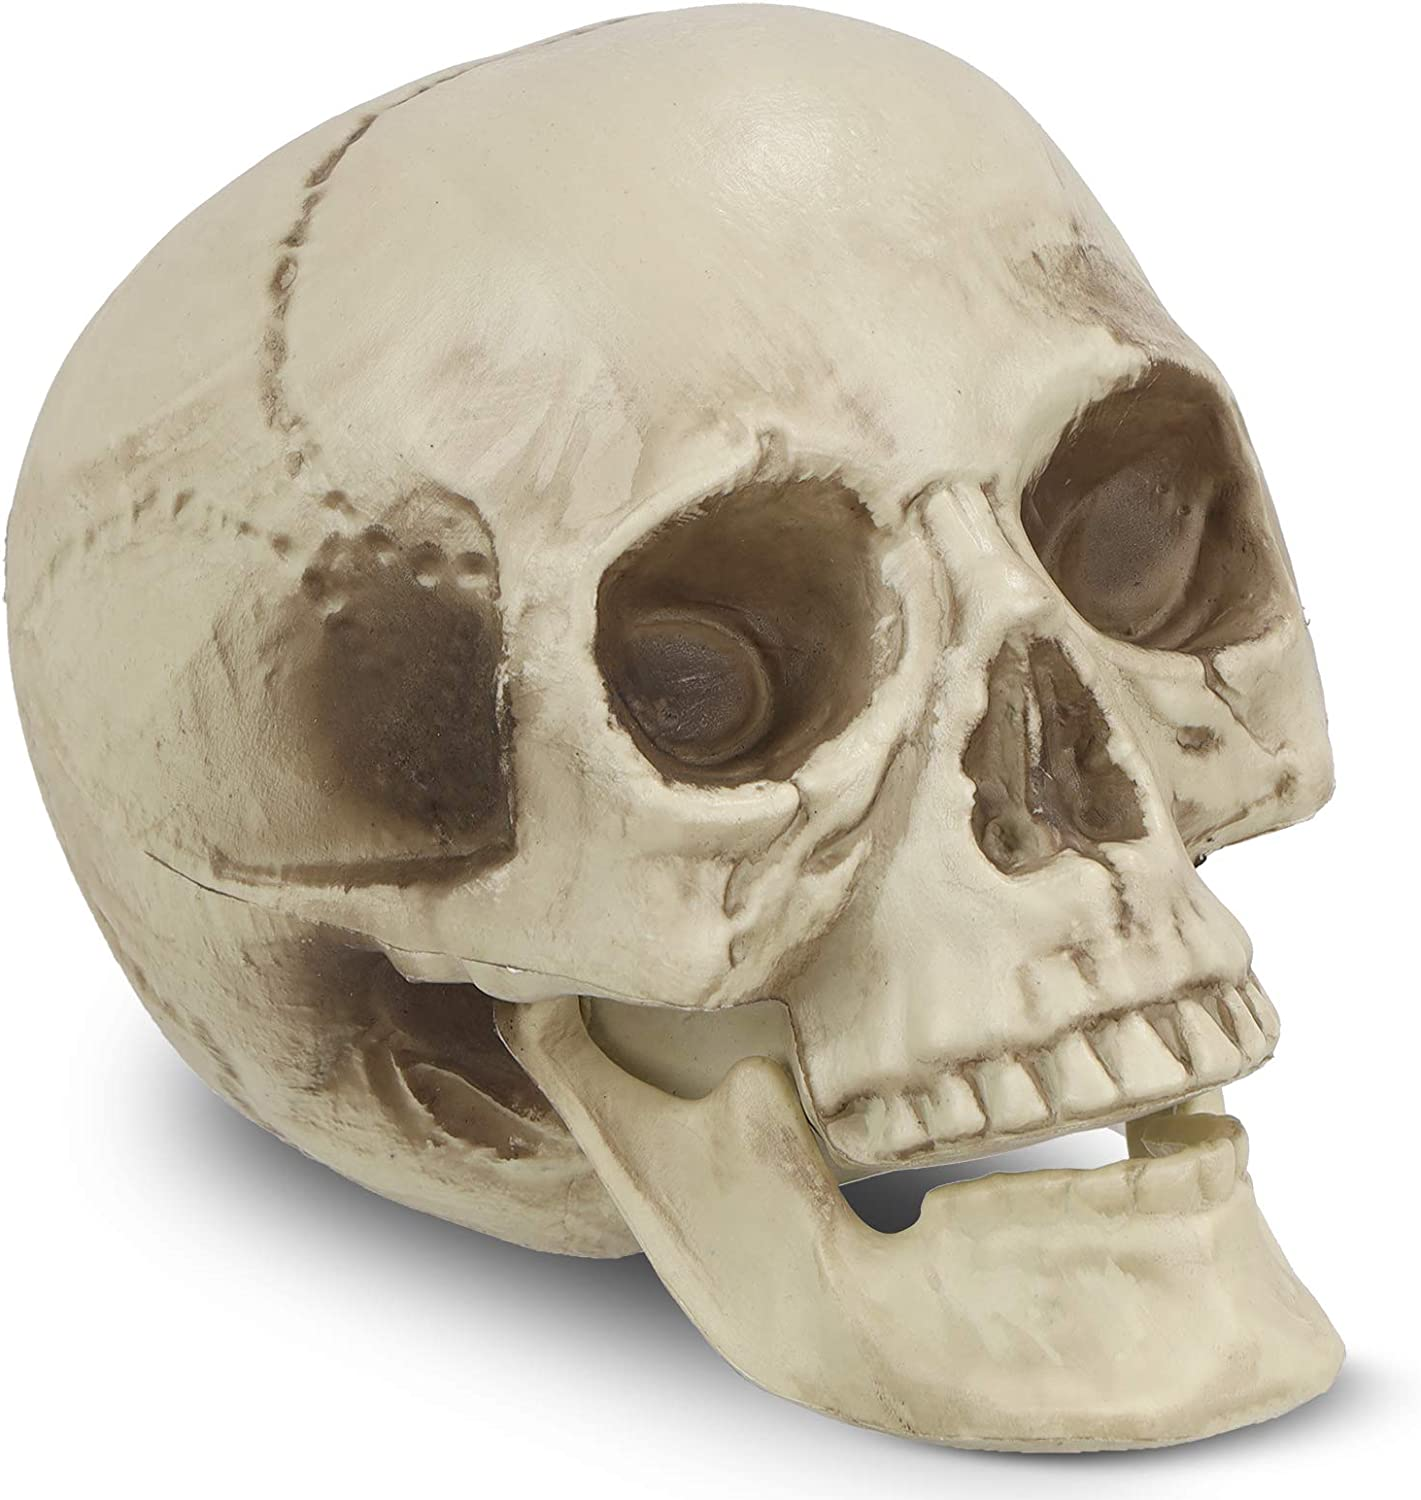 Oberhoffe Halloween Skulls Realistic Looking Skulls Human Skeleton Head Skull,Halloween Skull Decorationfor,Spooky Halloween Party Decorations & Gothic Kitchen Decor (Printed Head Skull)